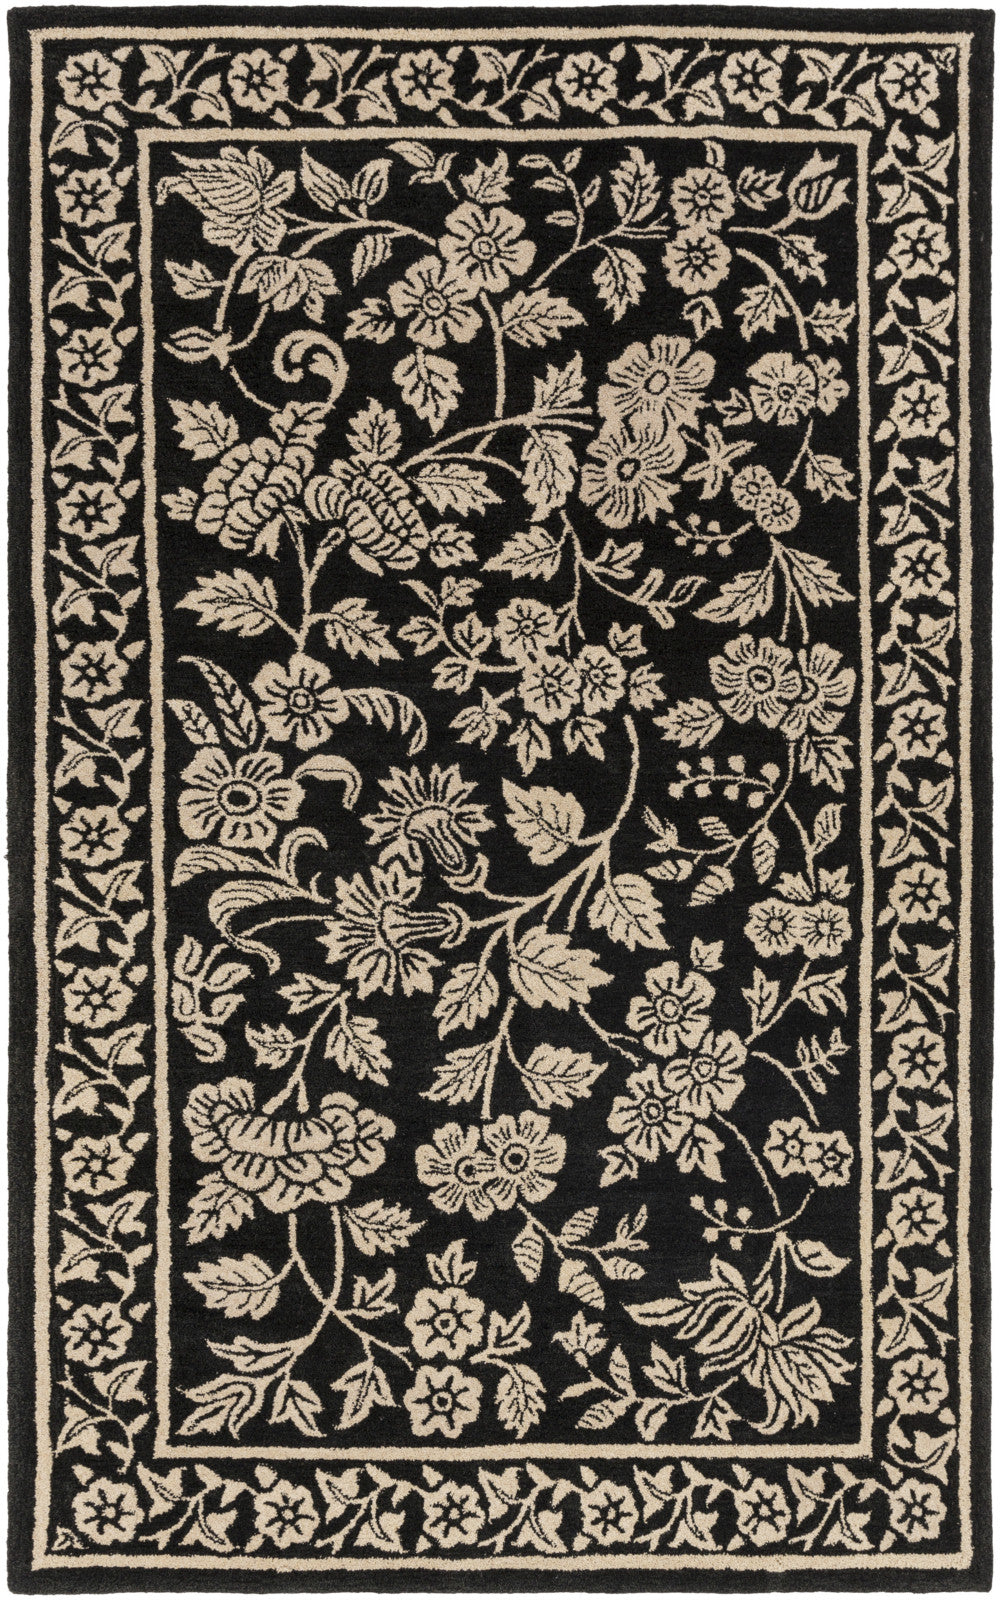 Surya SMI-2160 Black Area Rug by Smithsonian